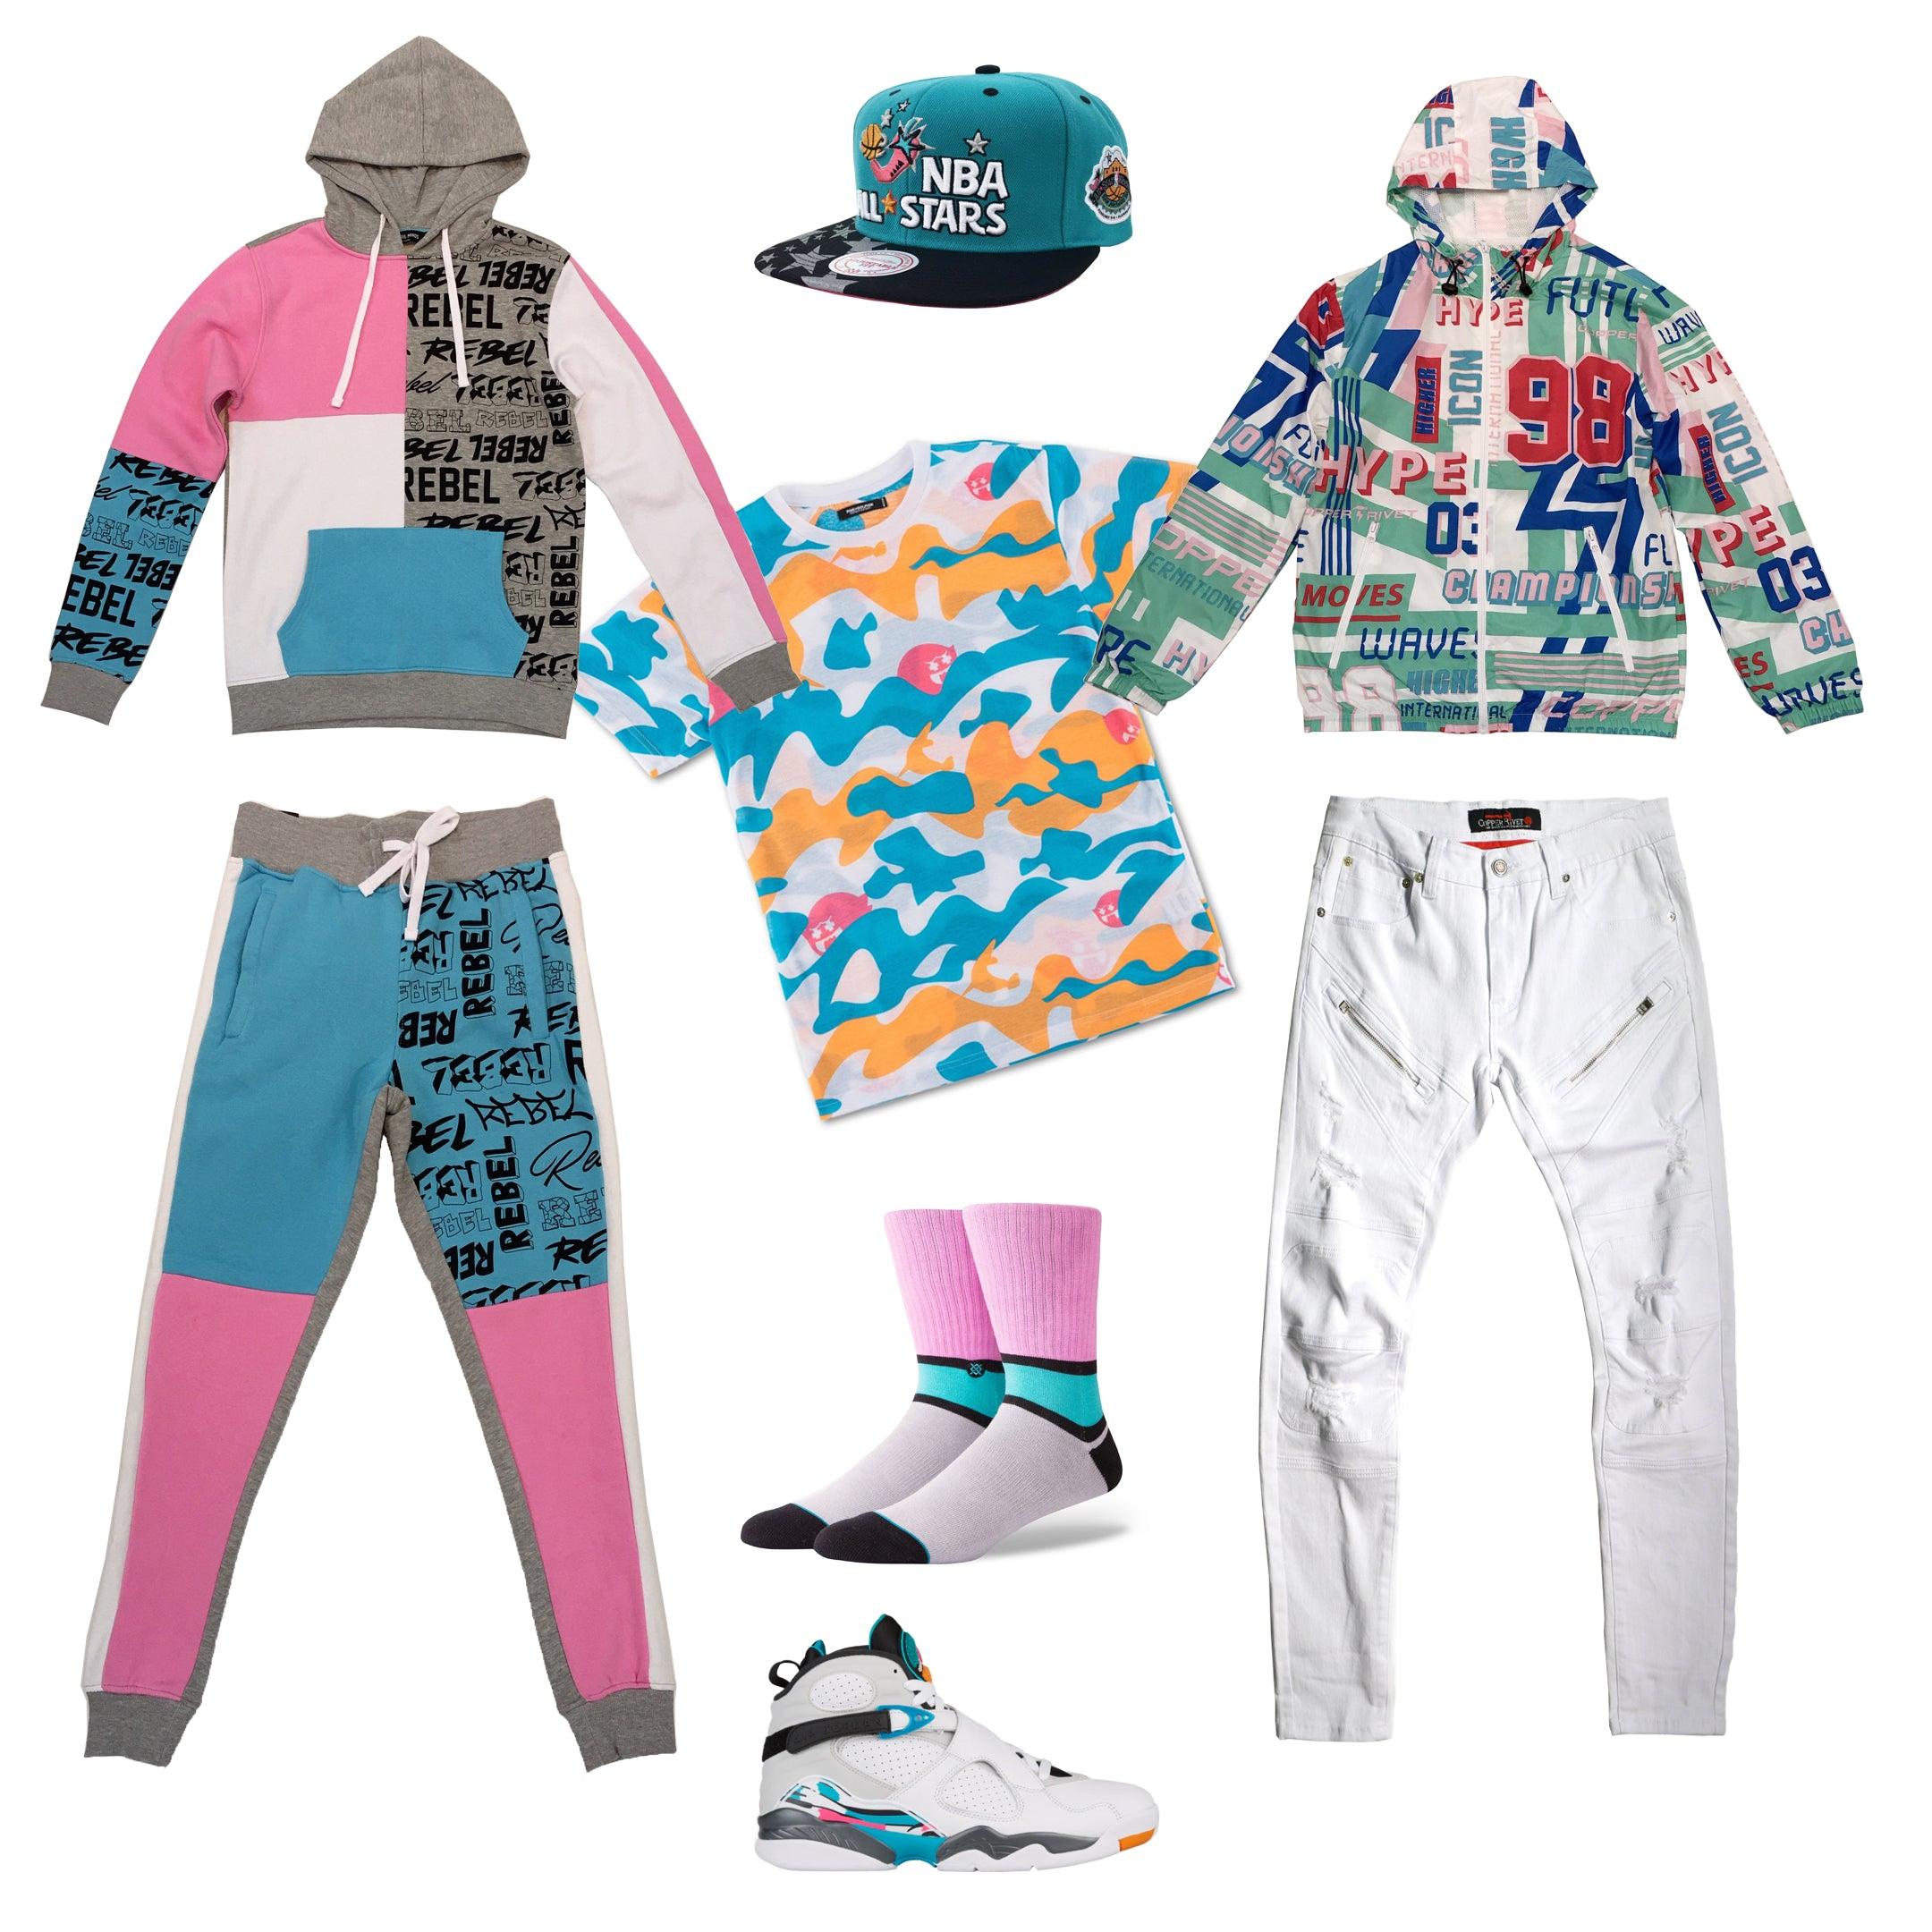 ae4a05f5187408 Air Jordan Retro 8 South Beach Outfit14.00 USDHat